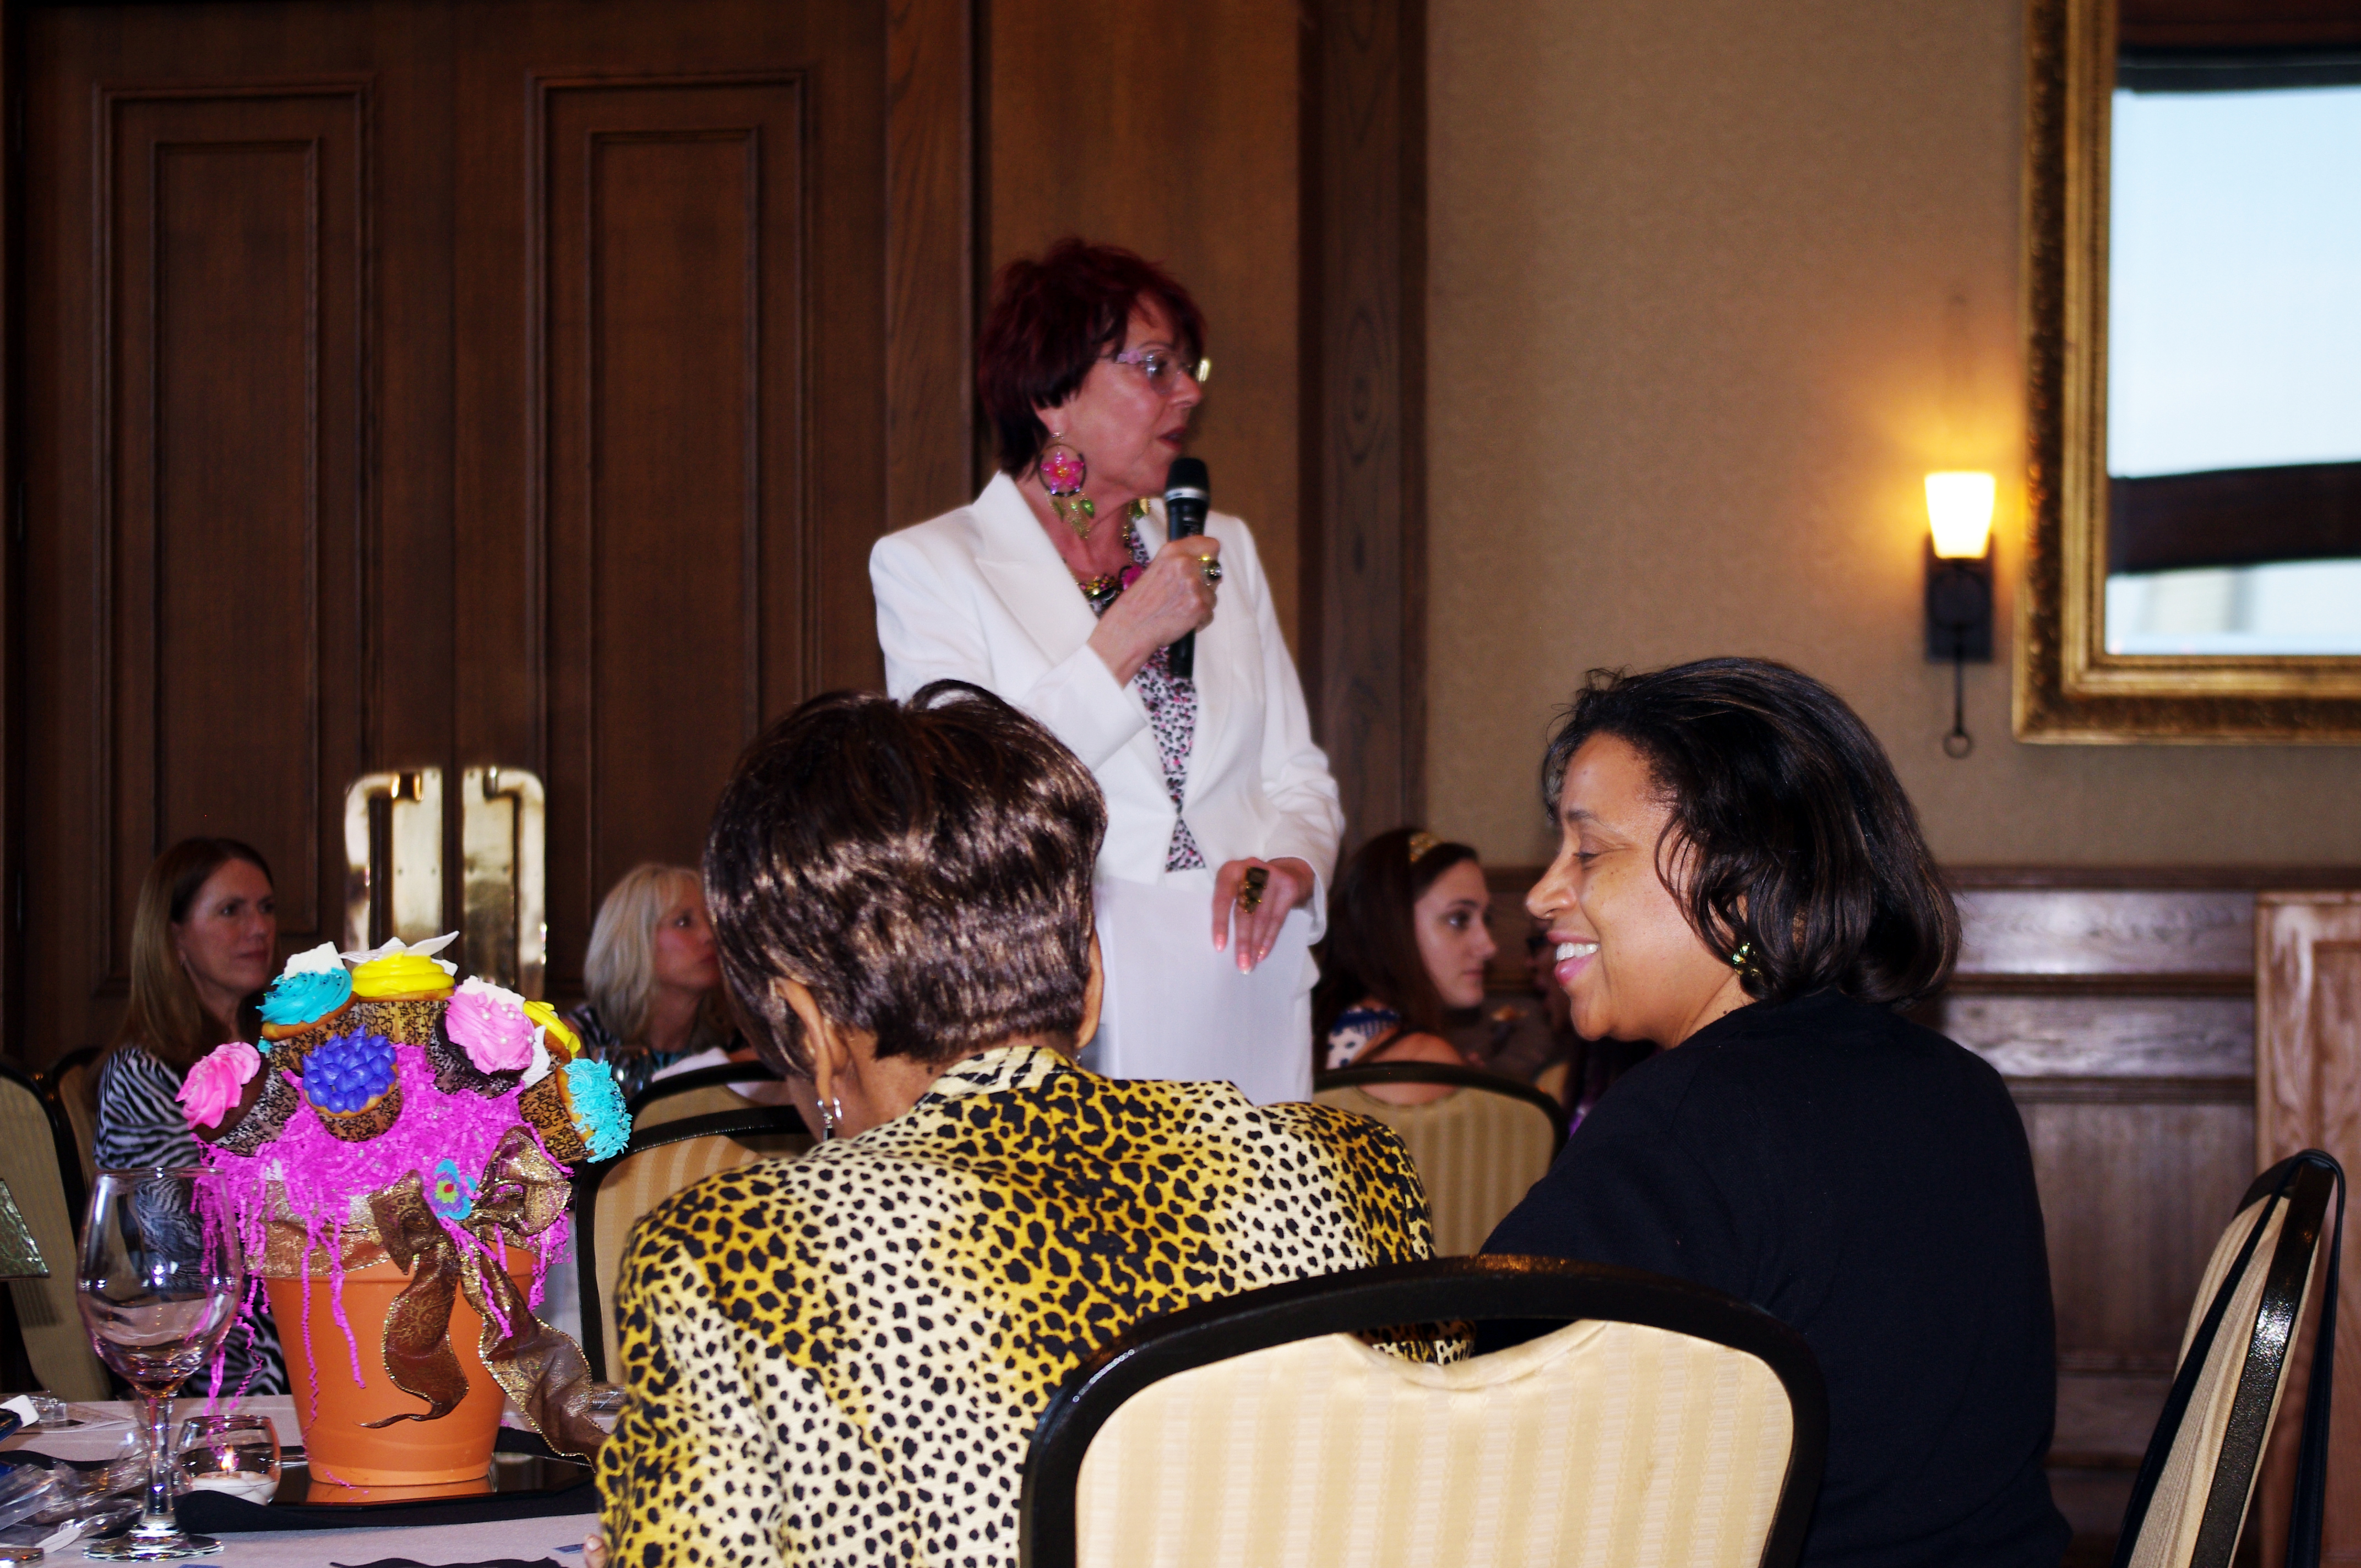 Wine, laughter, tear-jerking stories of sacrifice and celebrity purse buying were all mixed together at the Irving International Women's Consortium's (IIWC) 8th Annual Influence of the Purse auction at the Las Colinas Country Club, April 10.